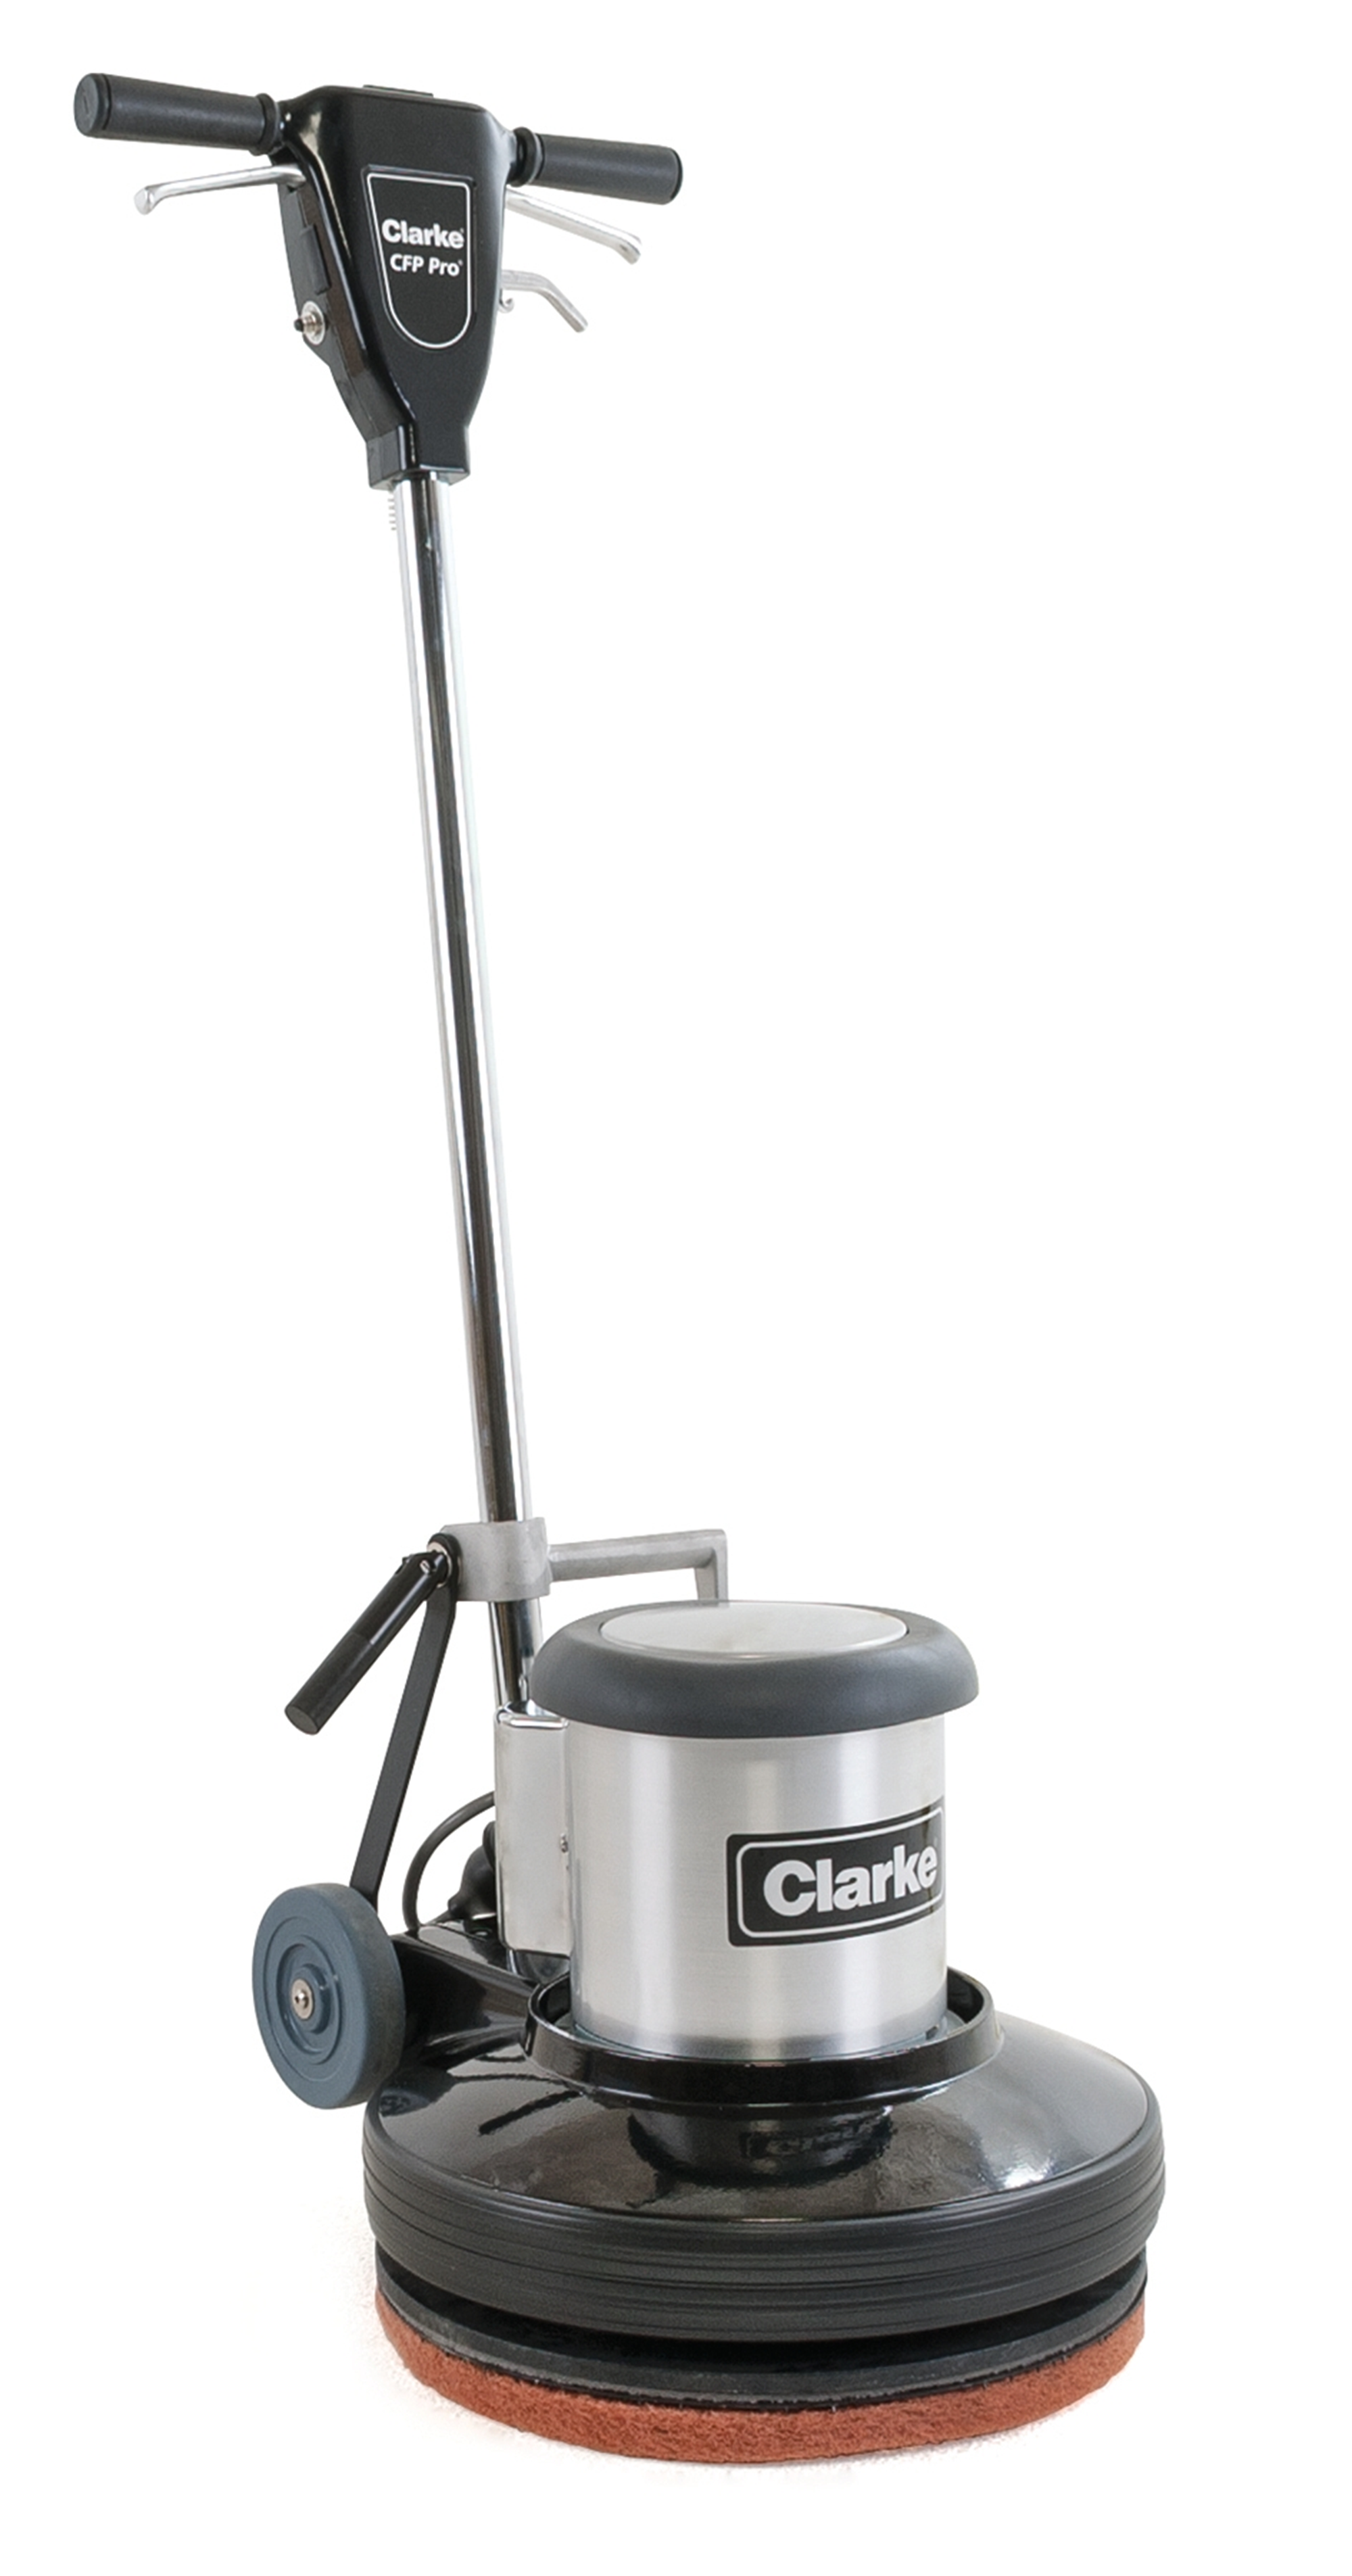 Product, Floor Cleaning, Floor Machines, Low Speed, Nilfisk, CFP PRO 17HD FLOOR MACHINE